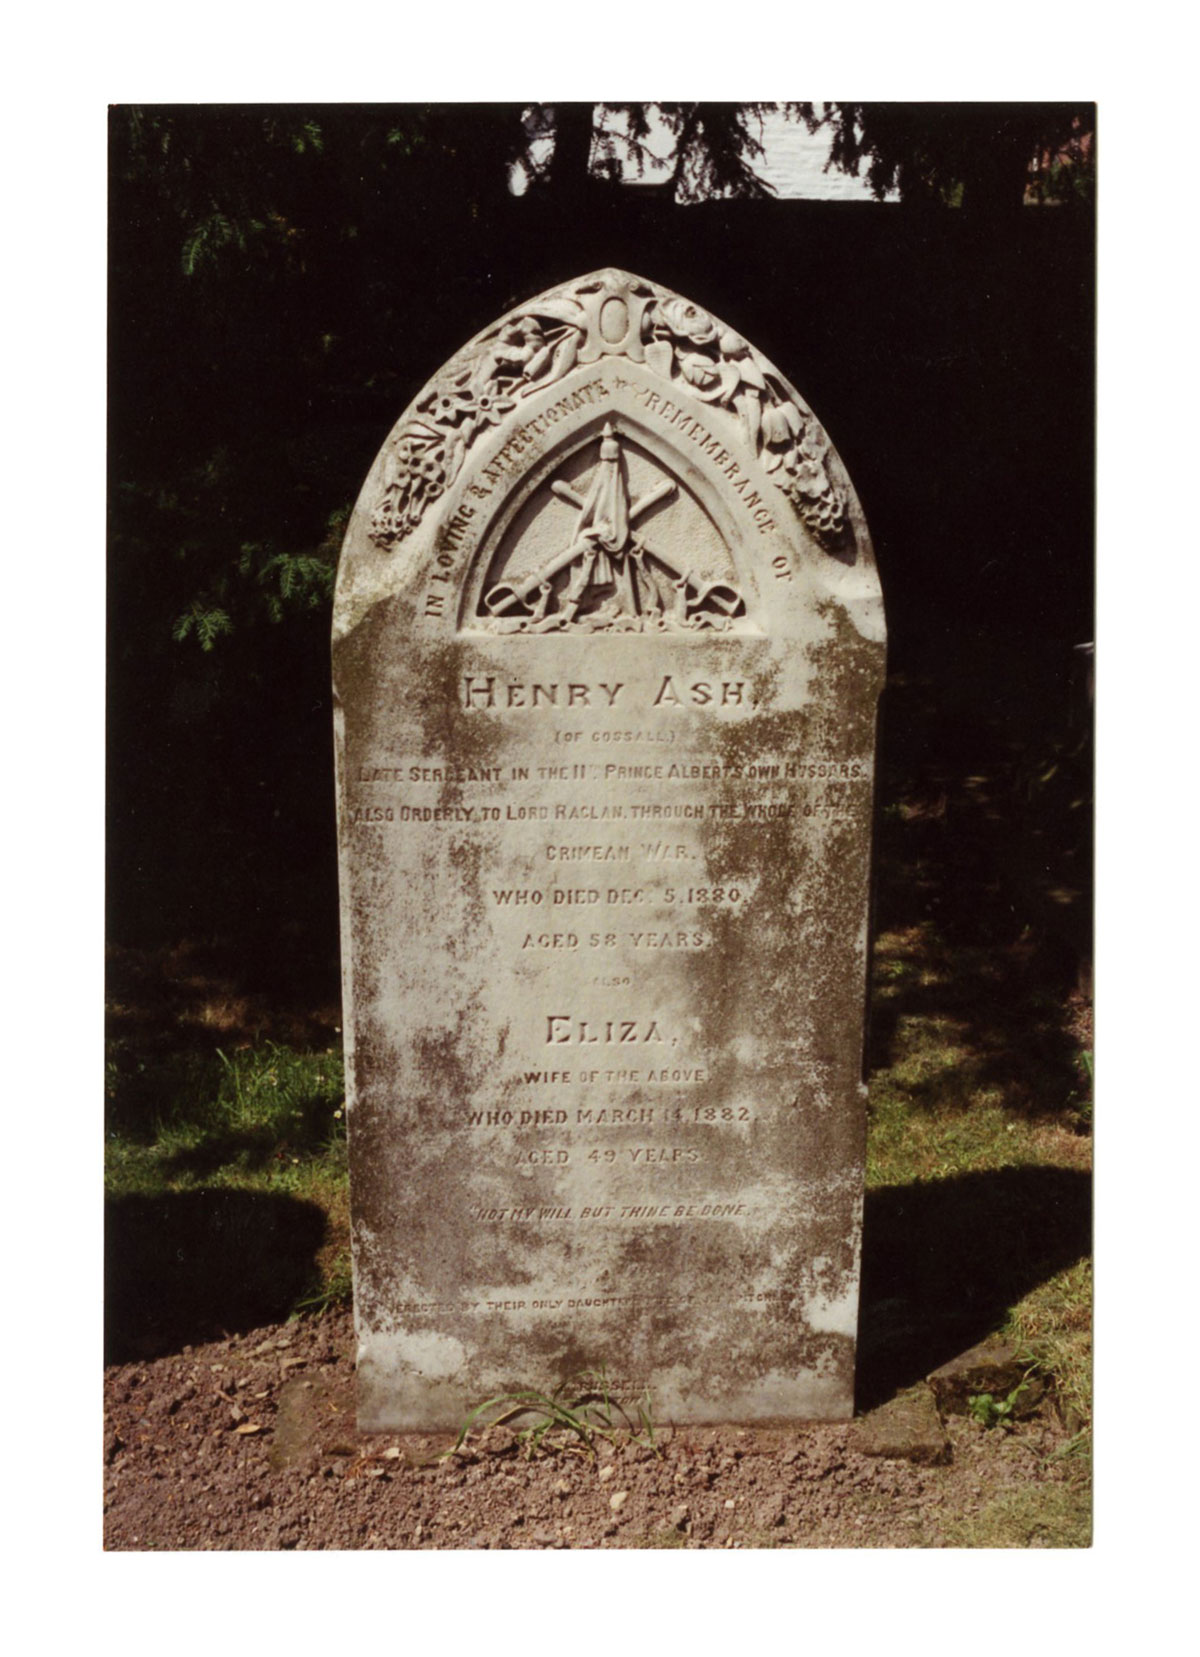 Photograph of Henry Ash's headstone in St. Catherine's churchyard, Cossall, near Ilkeston.